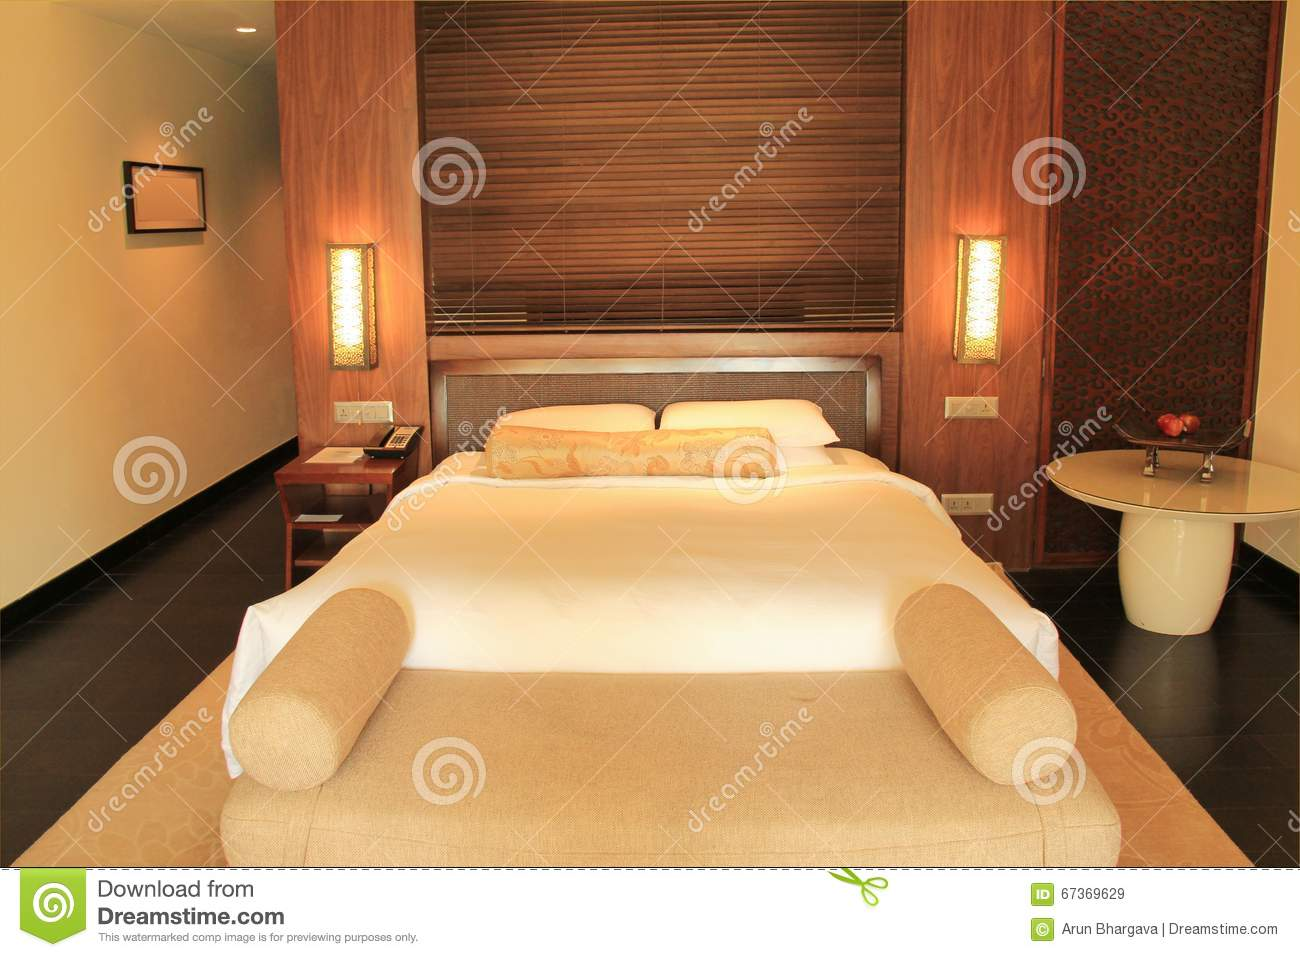 Sofa Bed Hotel Quality Hotel Room Stock Photo Image 67369629